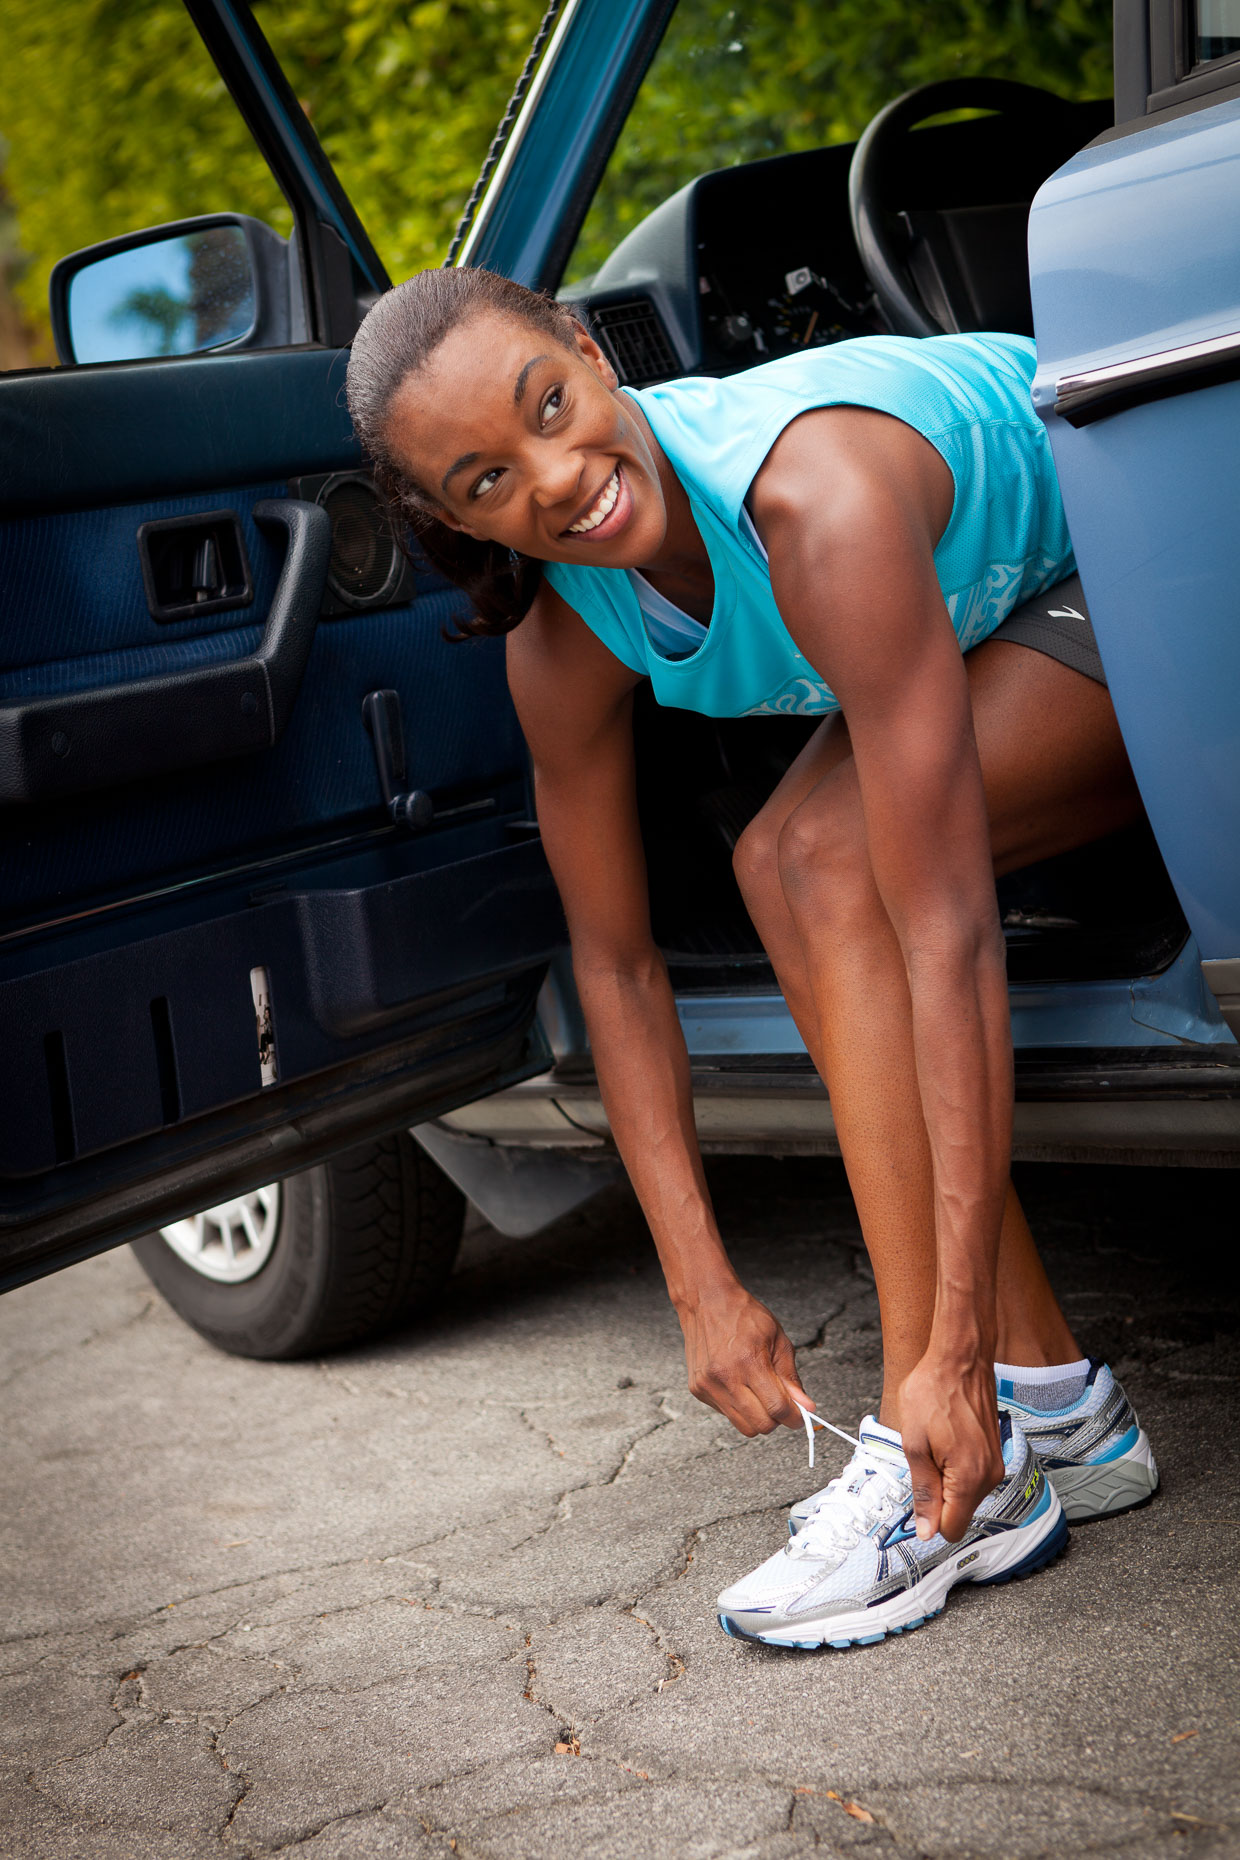 African American woman sitting in car with feet on ground tying shoe before fitness run exercise. Palm Springs, California. David Zaitz Photography.